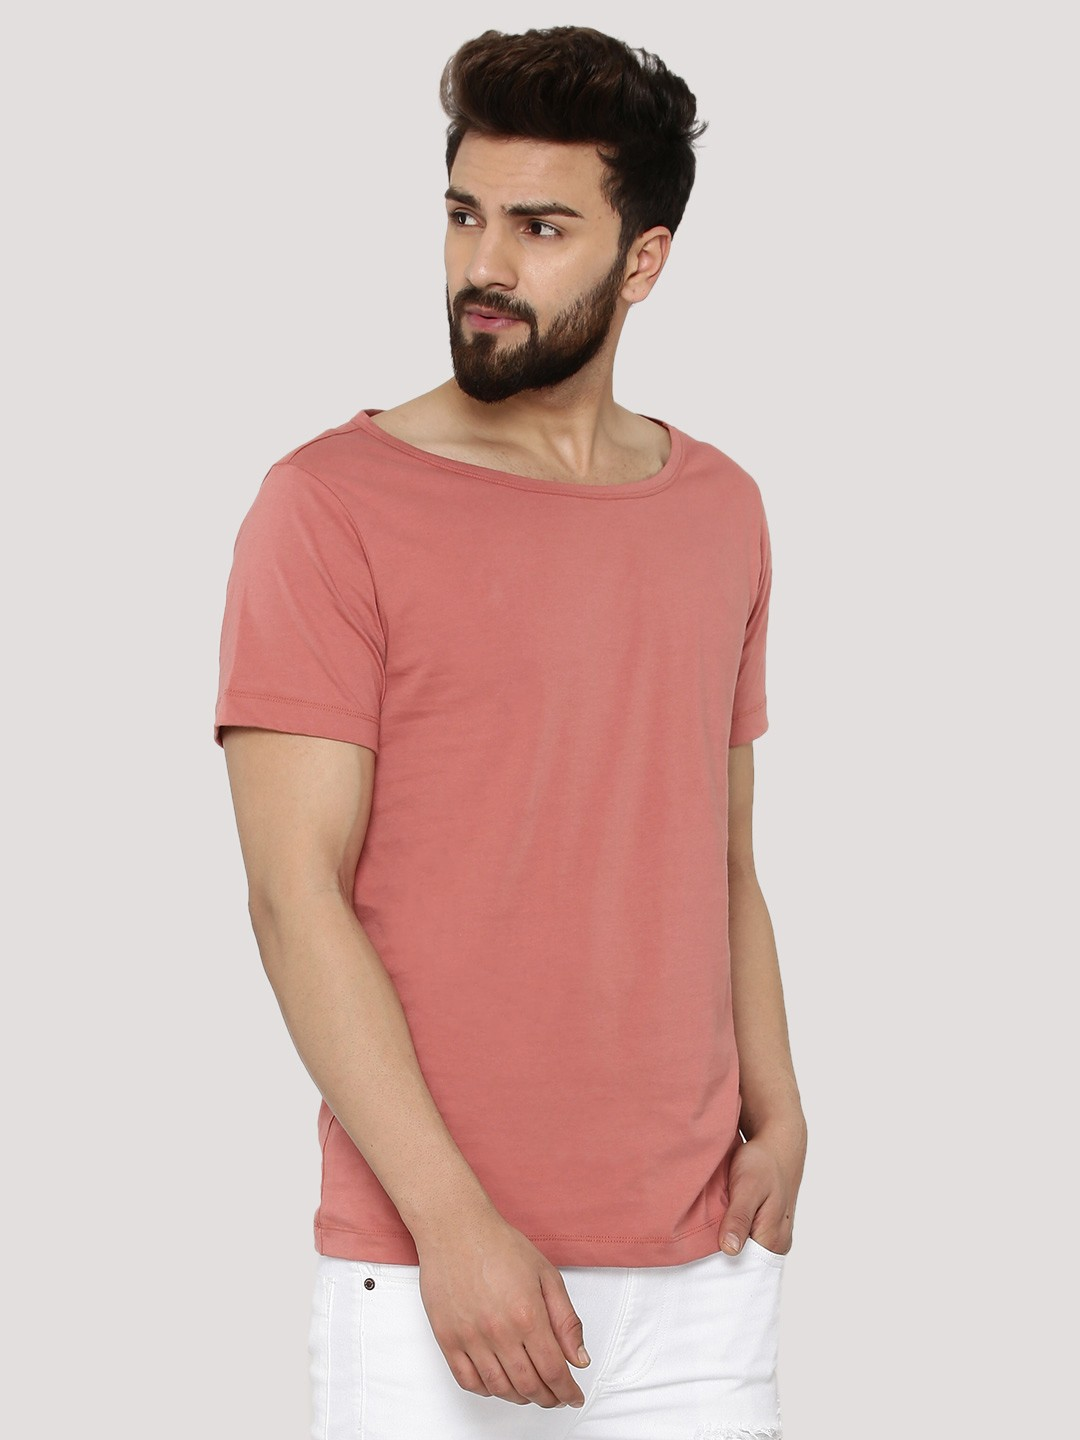 Buy koovs boat neck t shirt for men men 39 s pink t shirts for Tahari t shirt mens